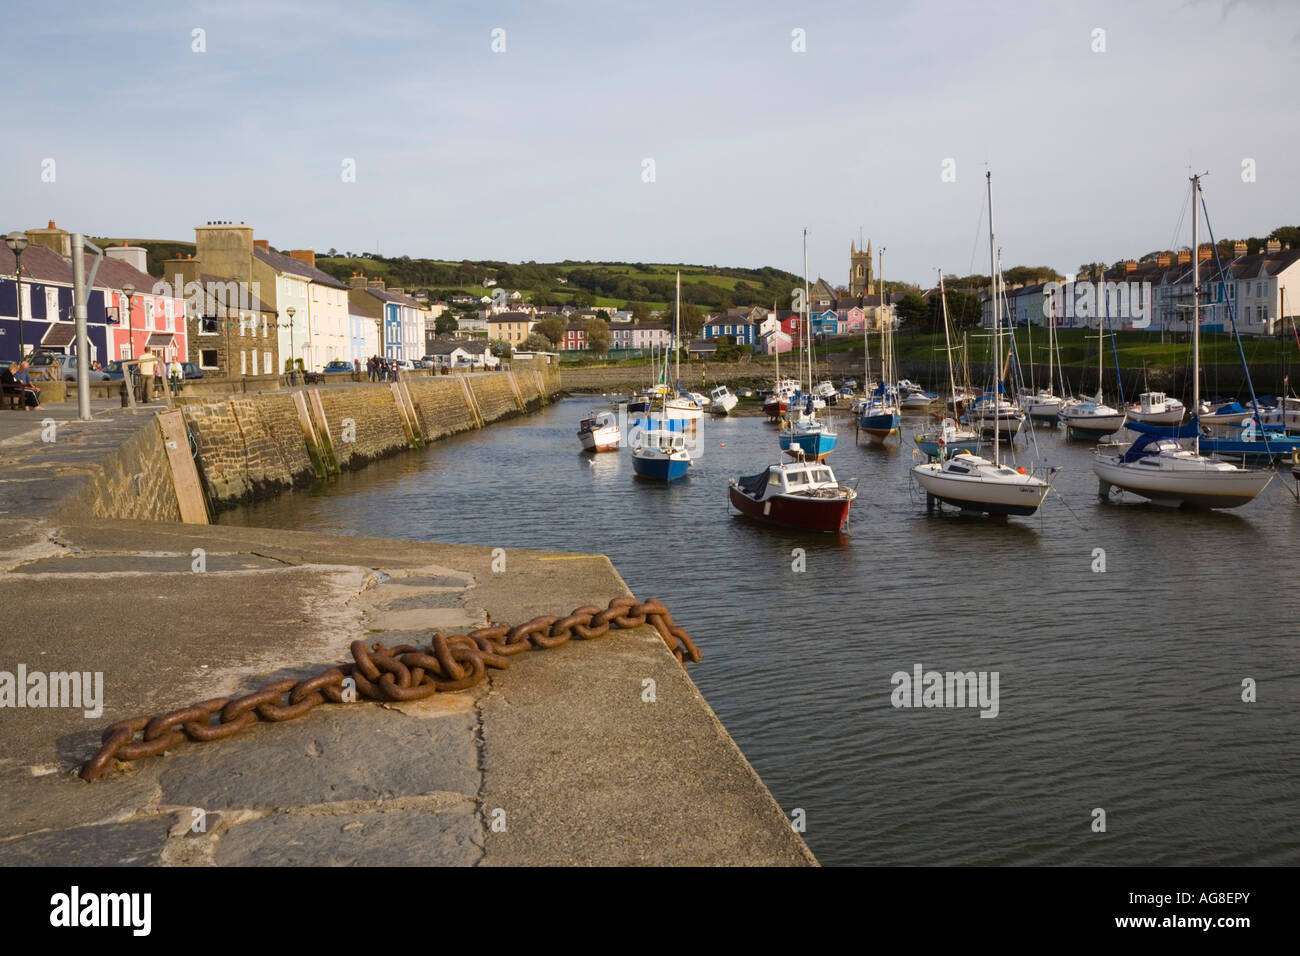 View along harbour with boats moored in attractive seaside town Aberaeron Ceredigion Mid Wales UK - Stock Image